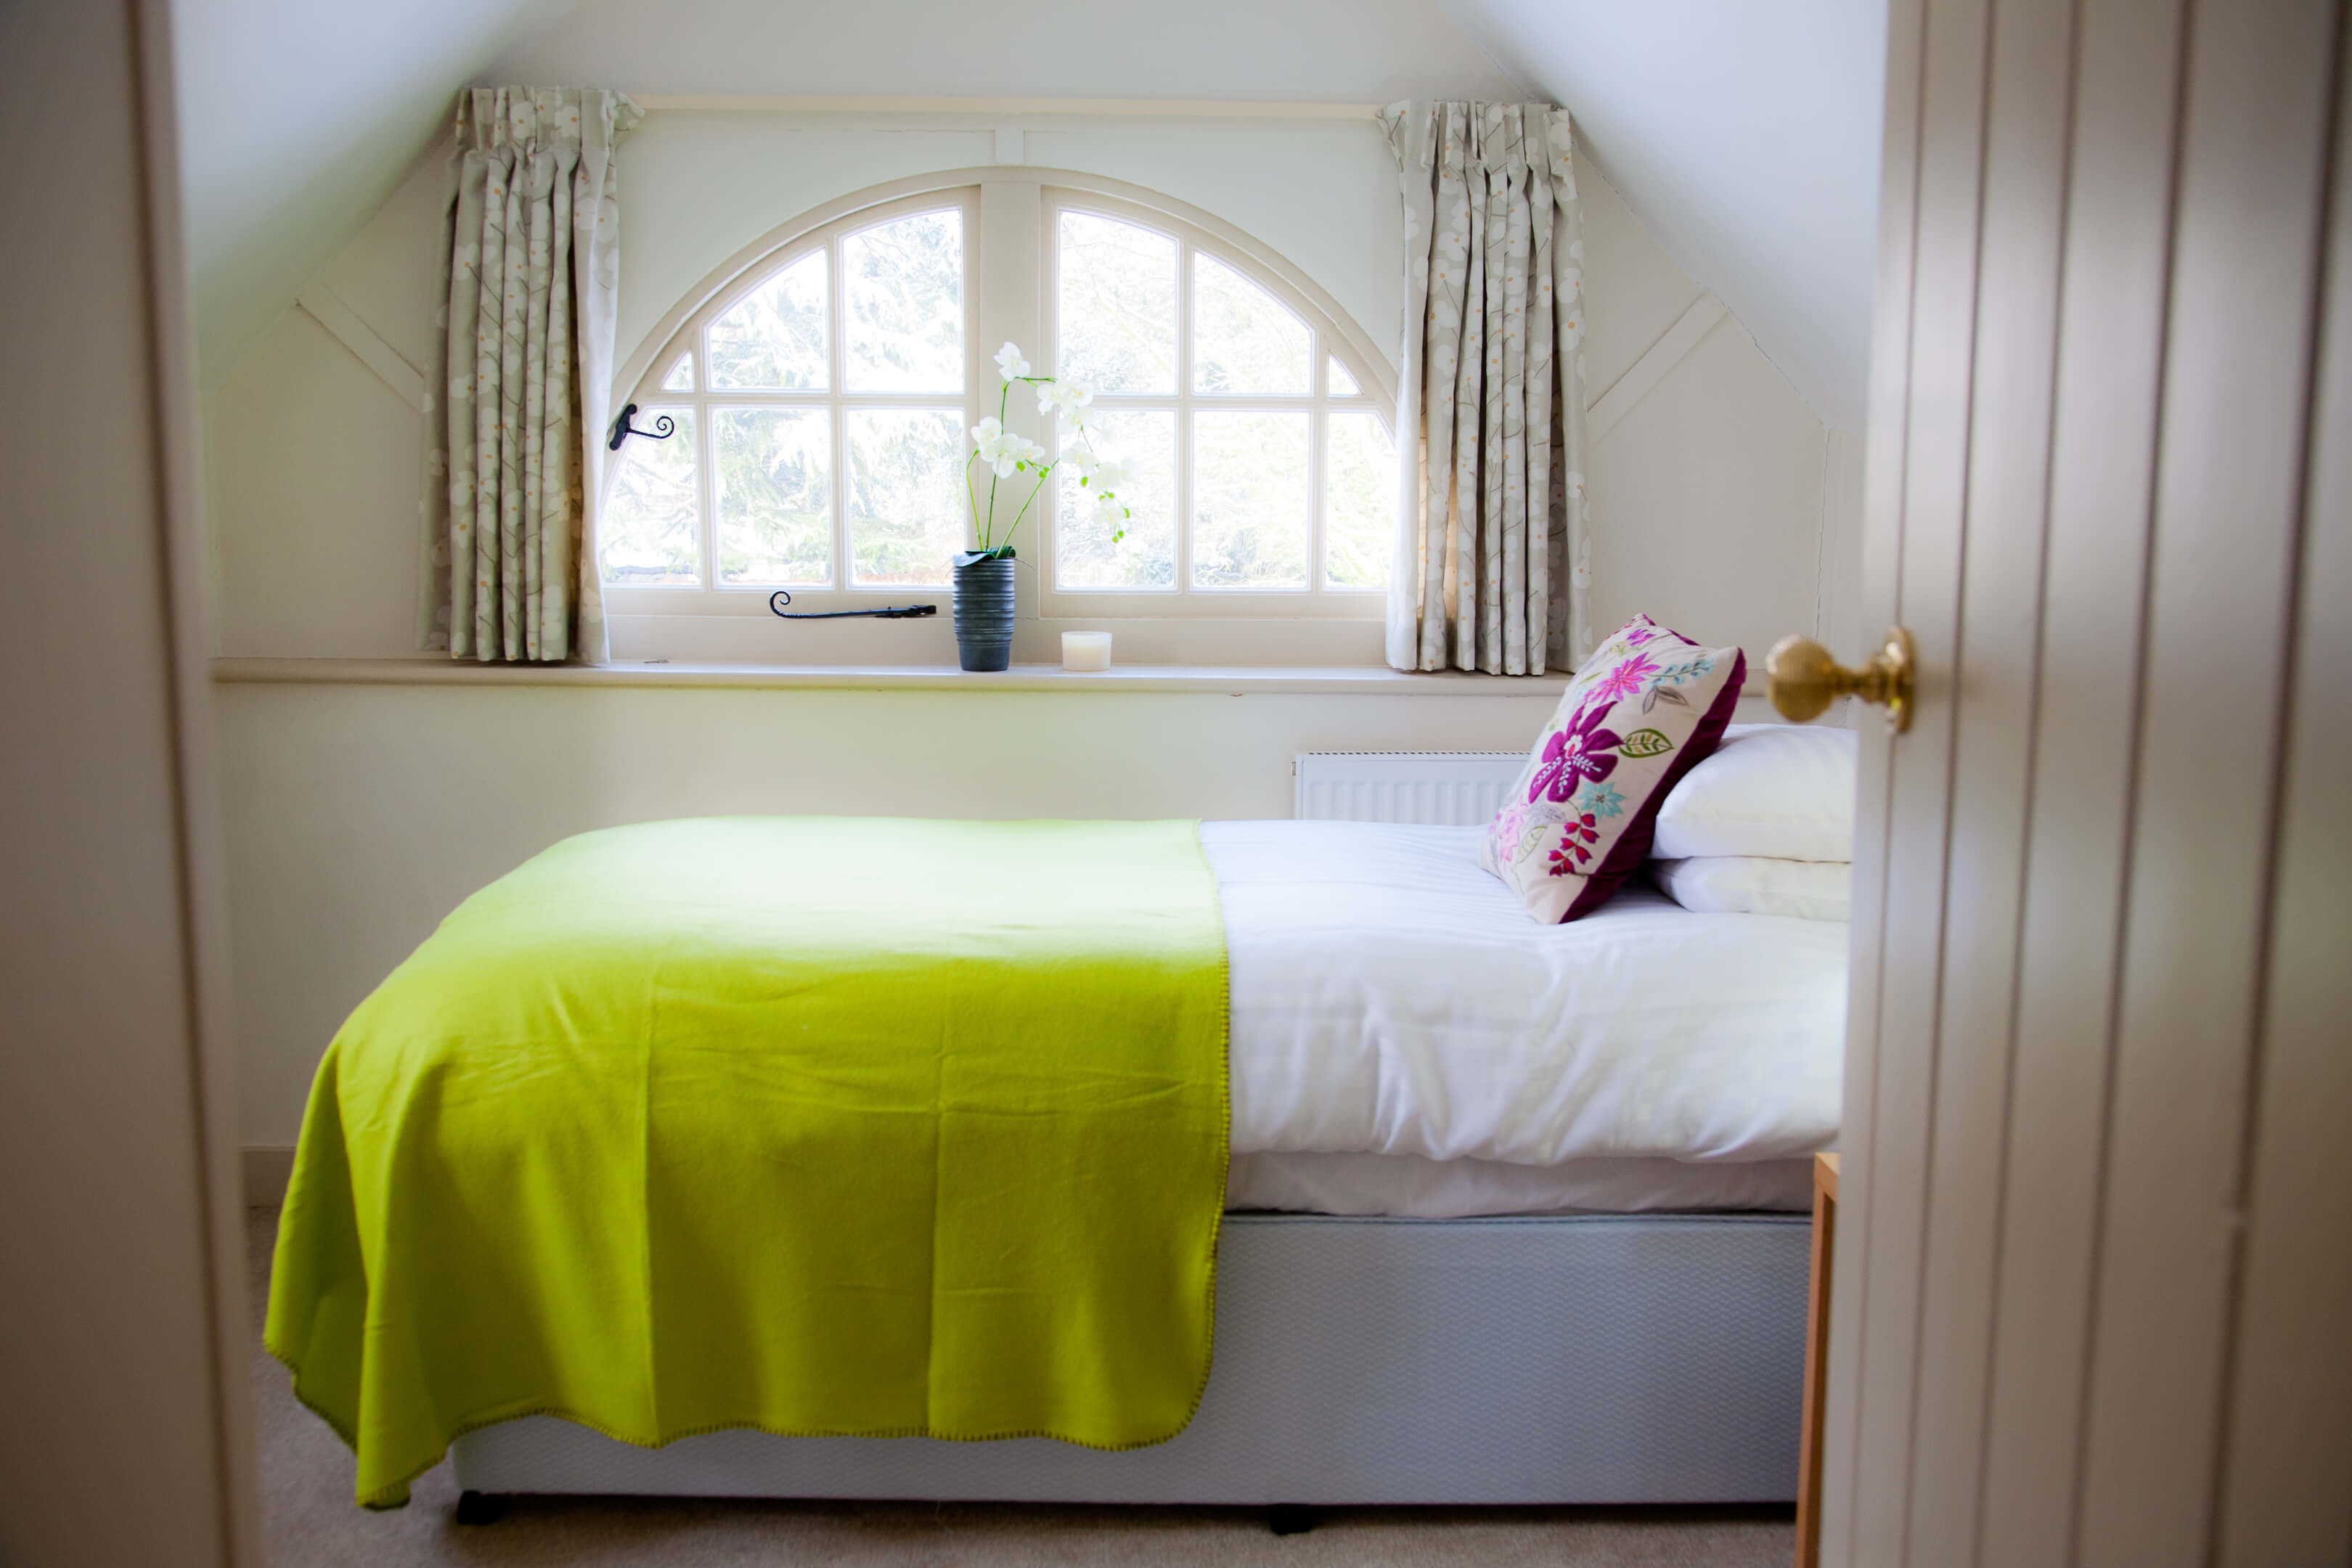 Oxford Shortlet Self Catering Apartment Doubleroom Beech Cottage 12